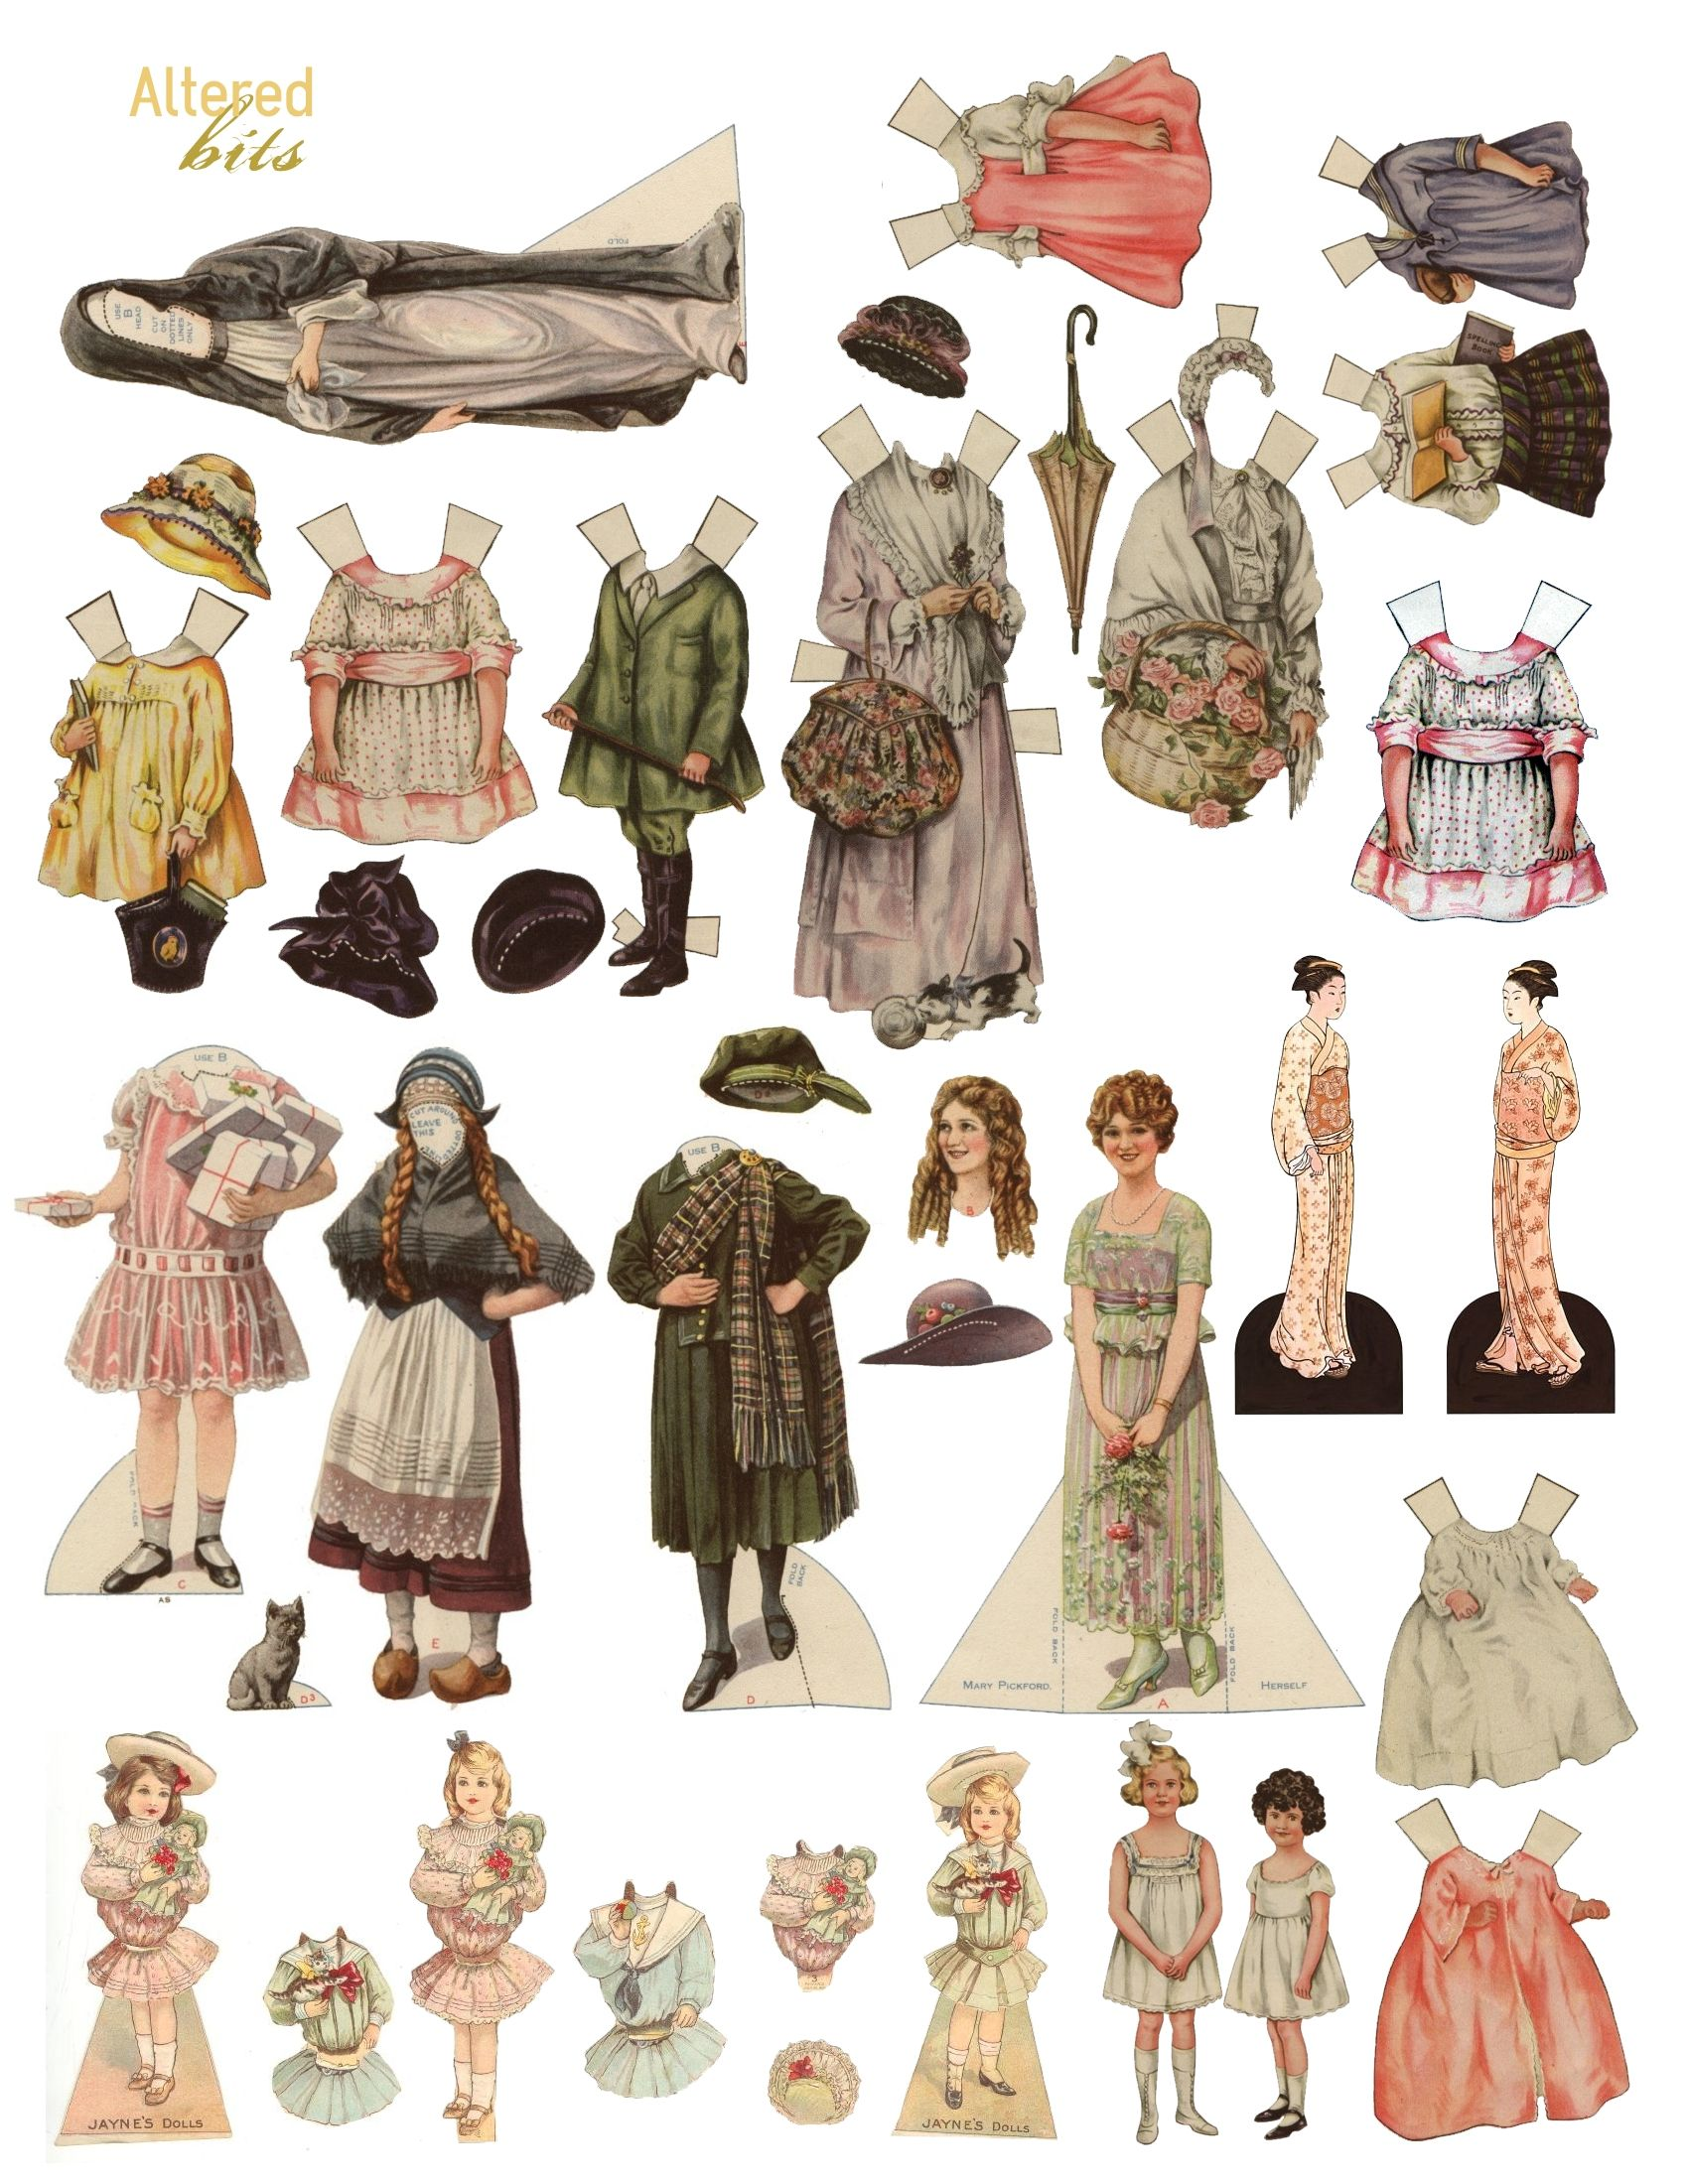 Where can you find free paper doll printouts?